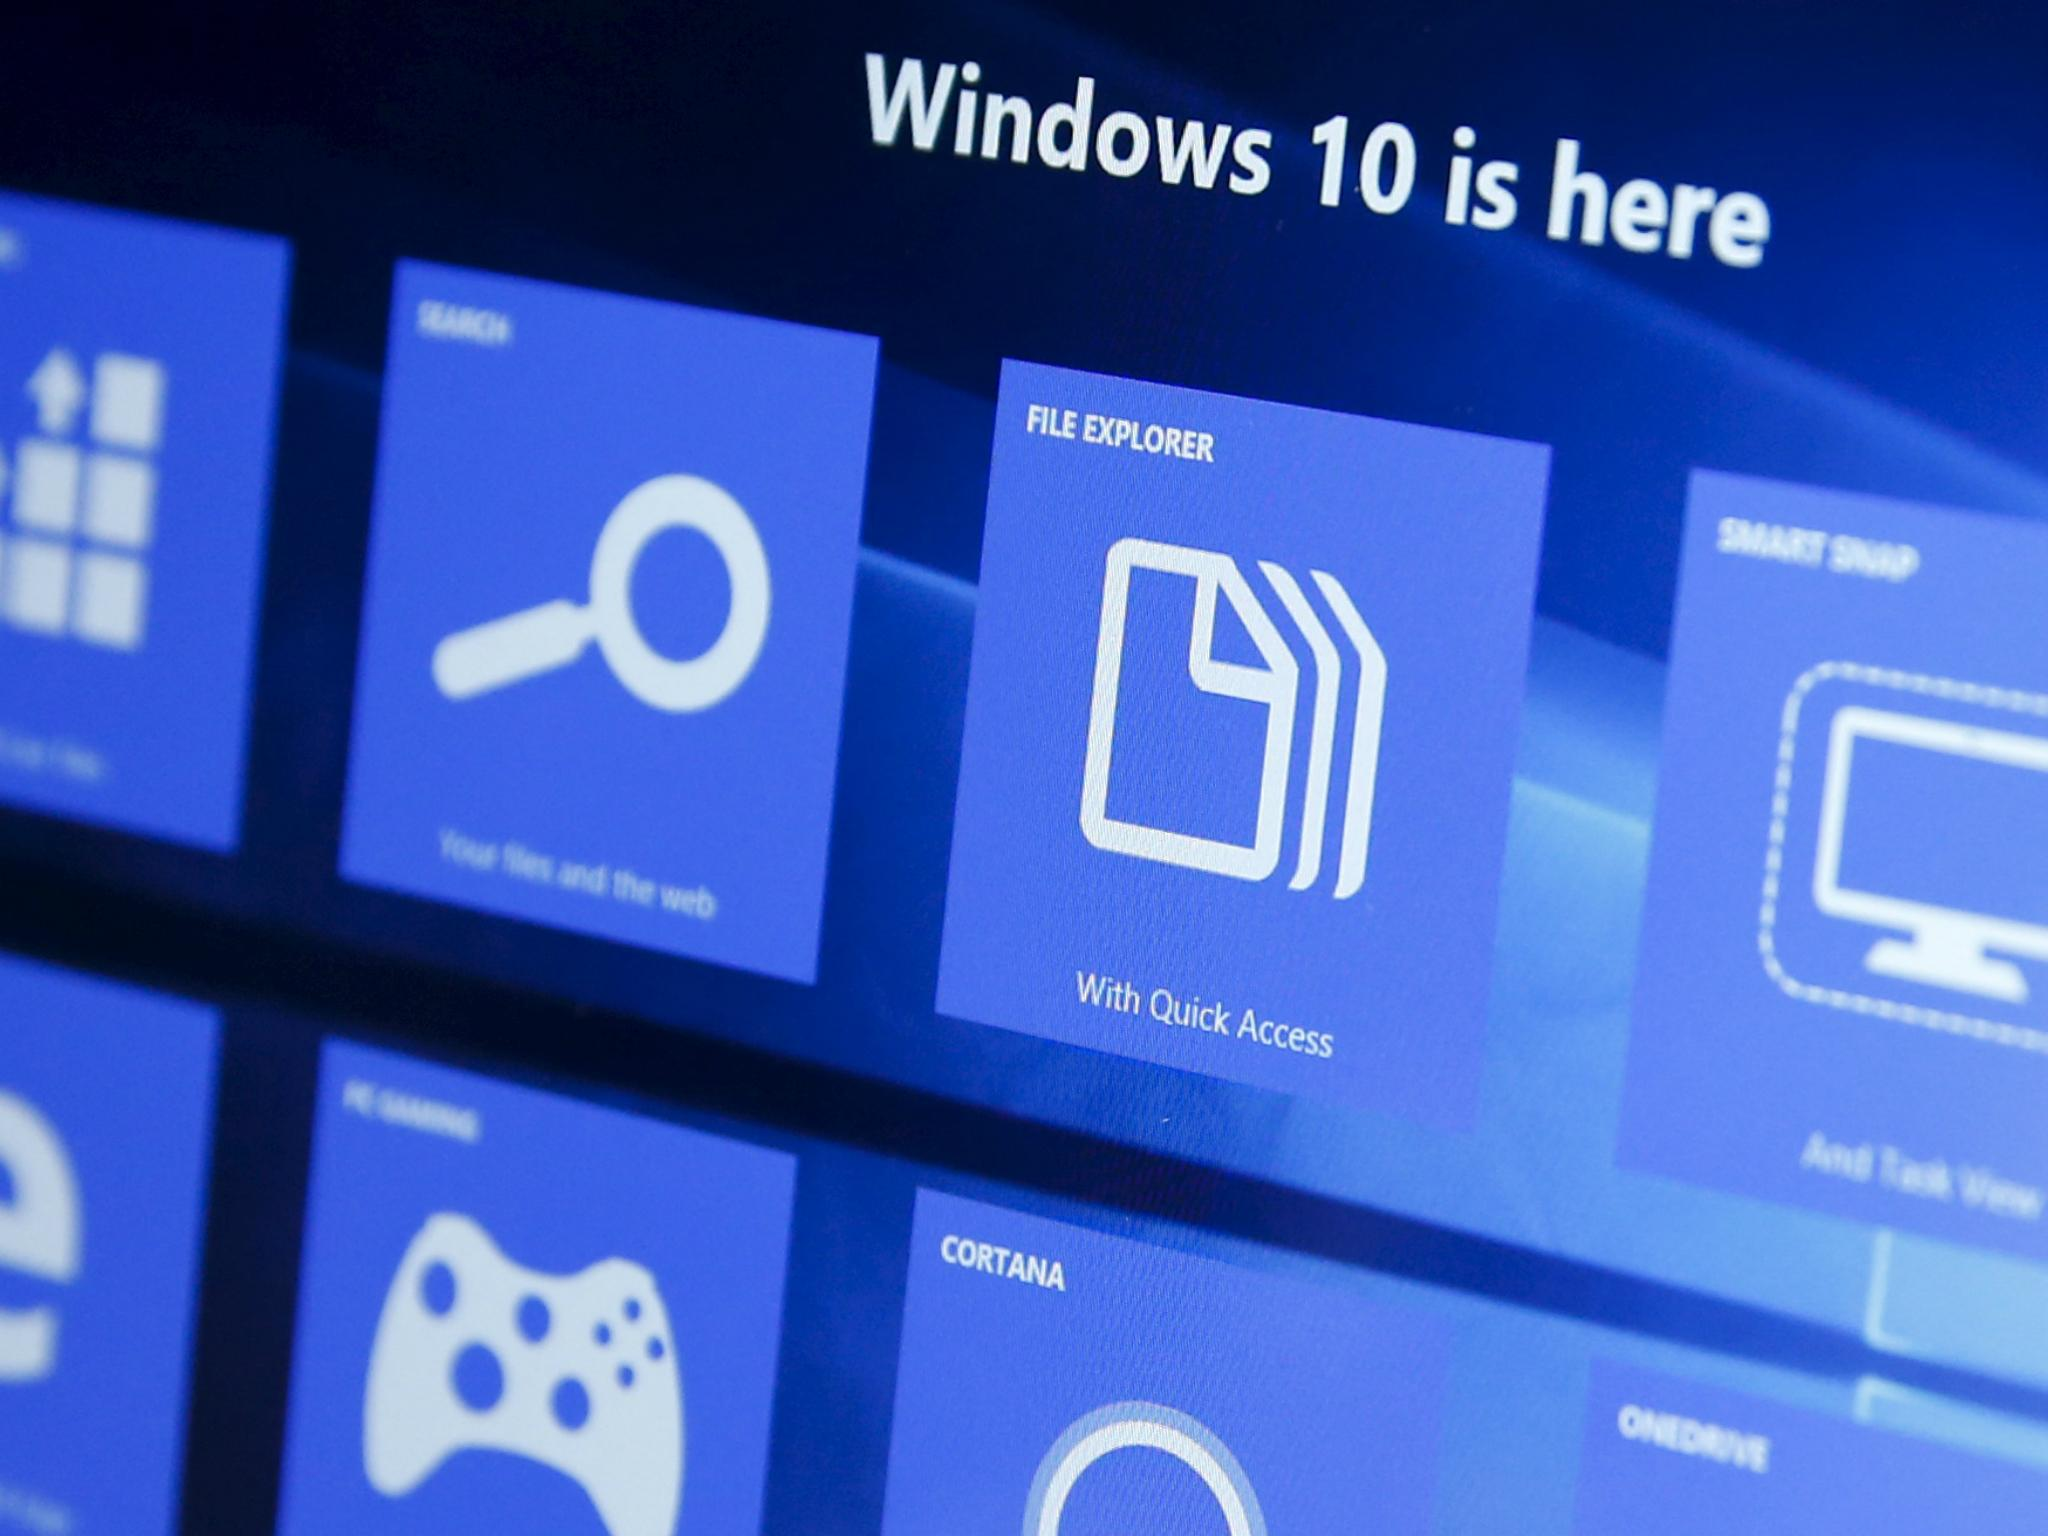 Microsoft Taken to Court Because Windows 10 Update 'destroyed People's Data and Damaged PCs'